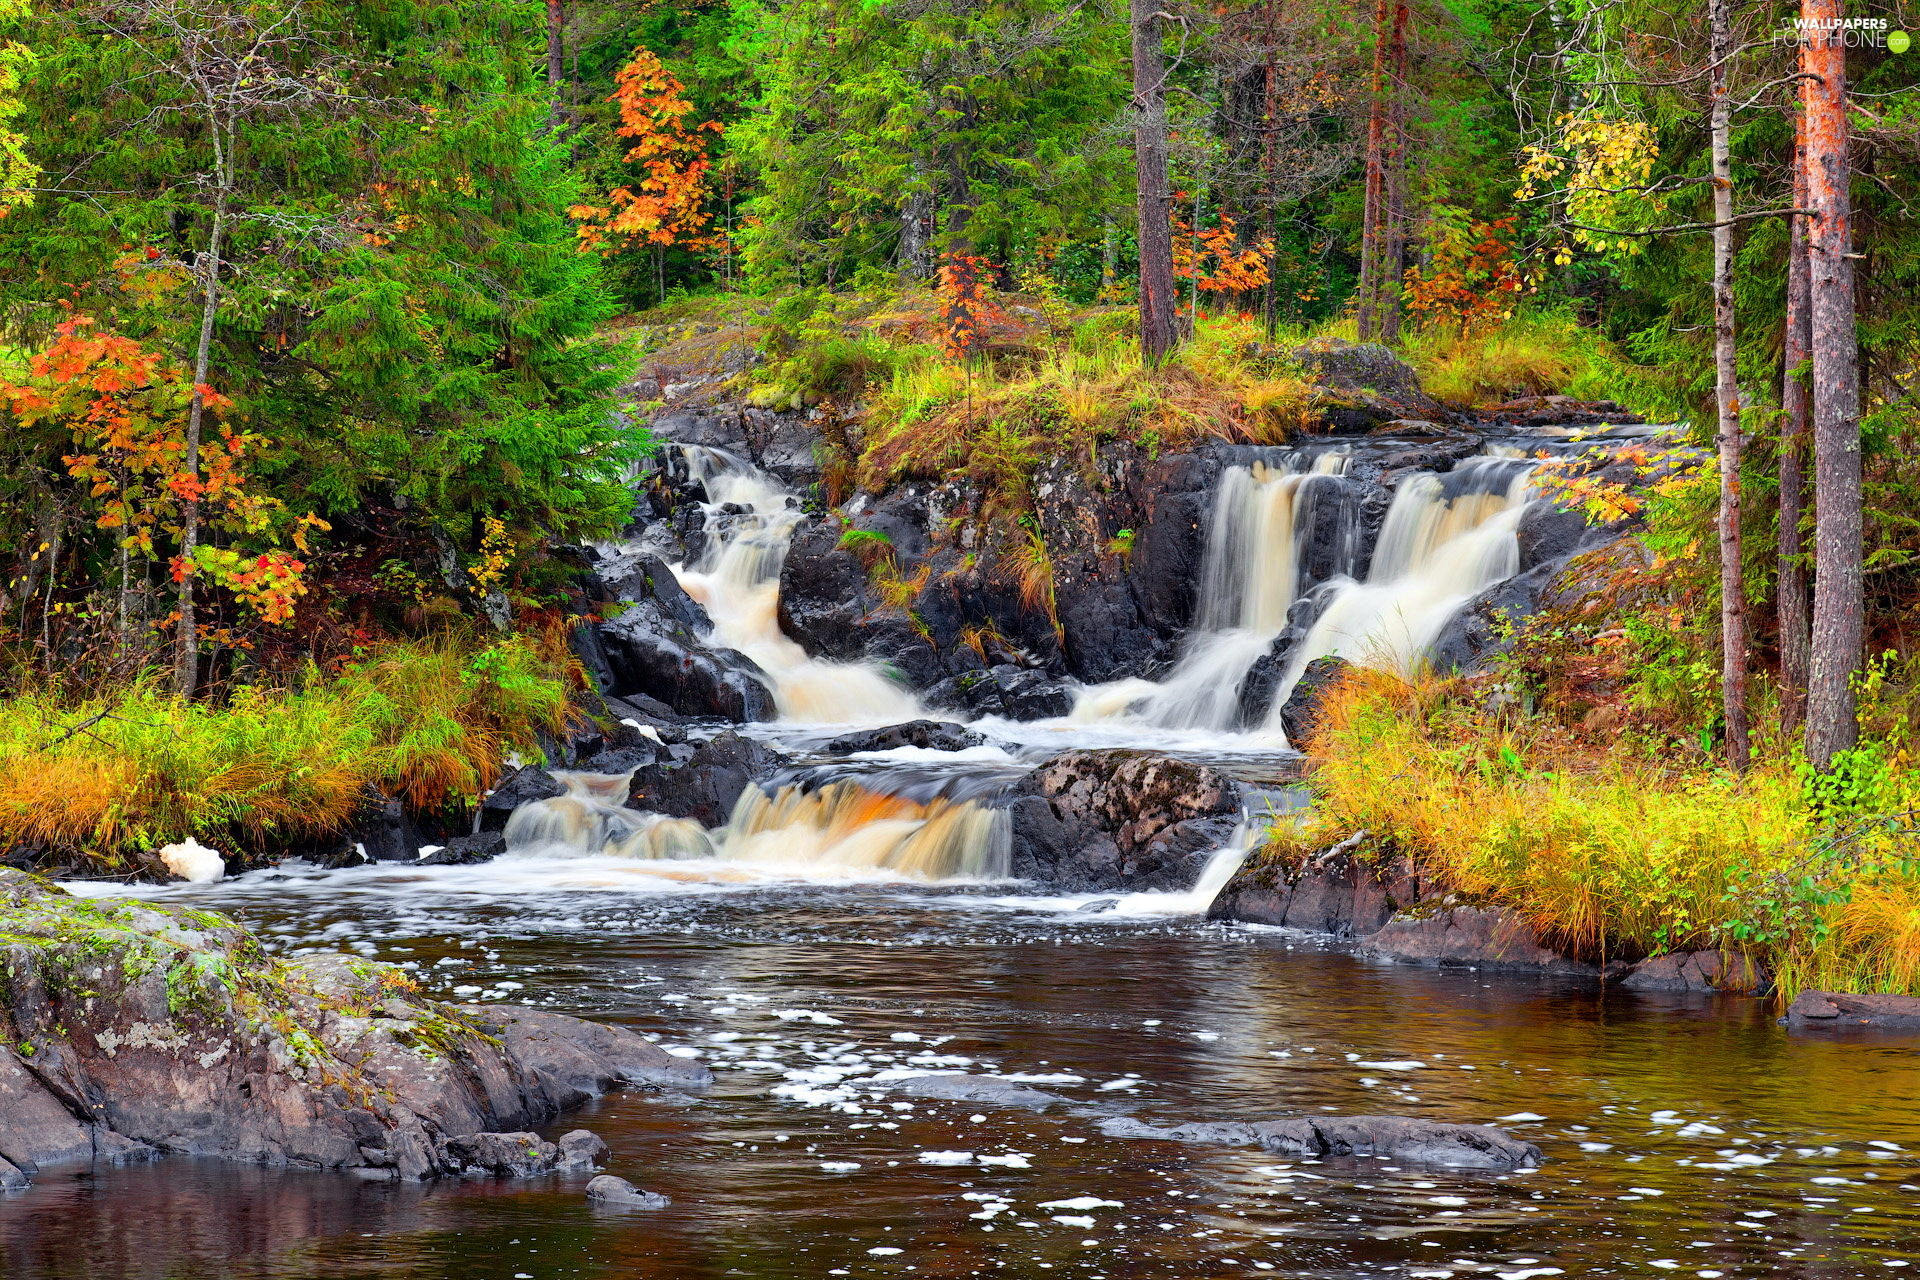 autumn, River, trees, viewes, Stones, waterfall